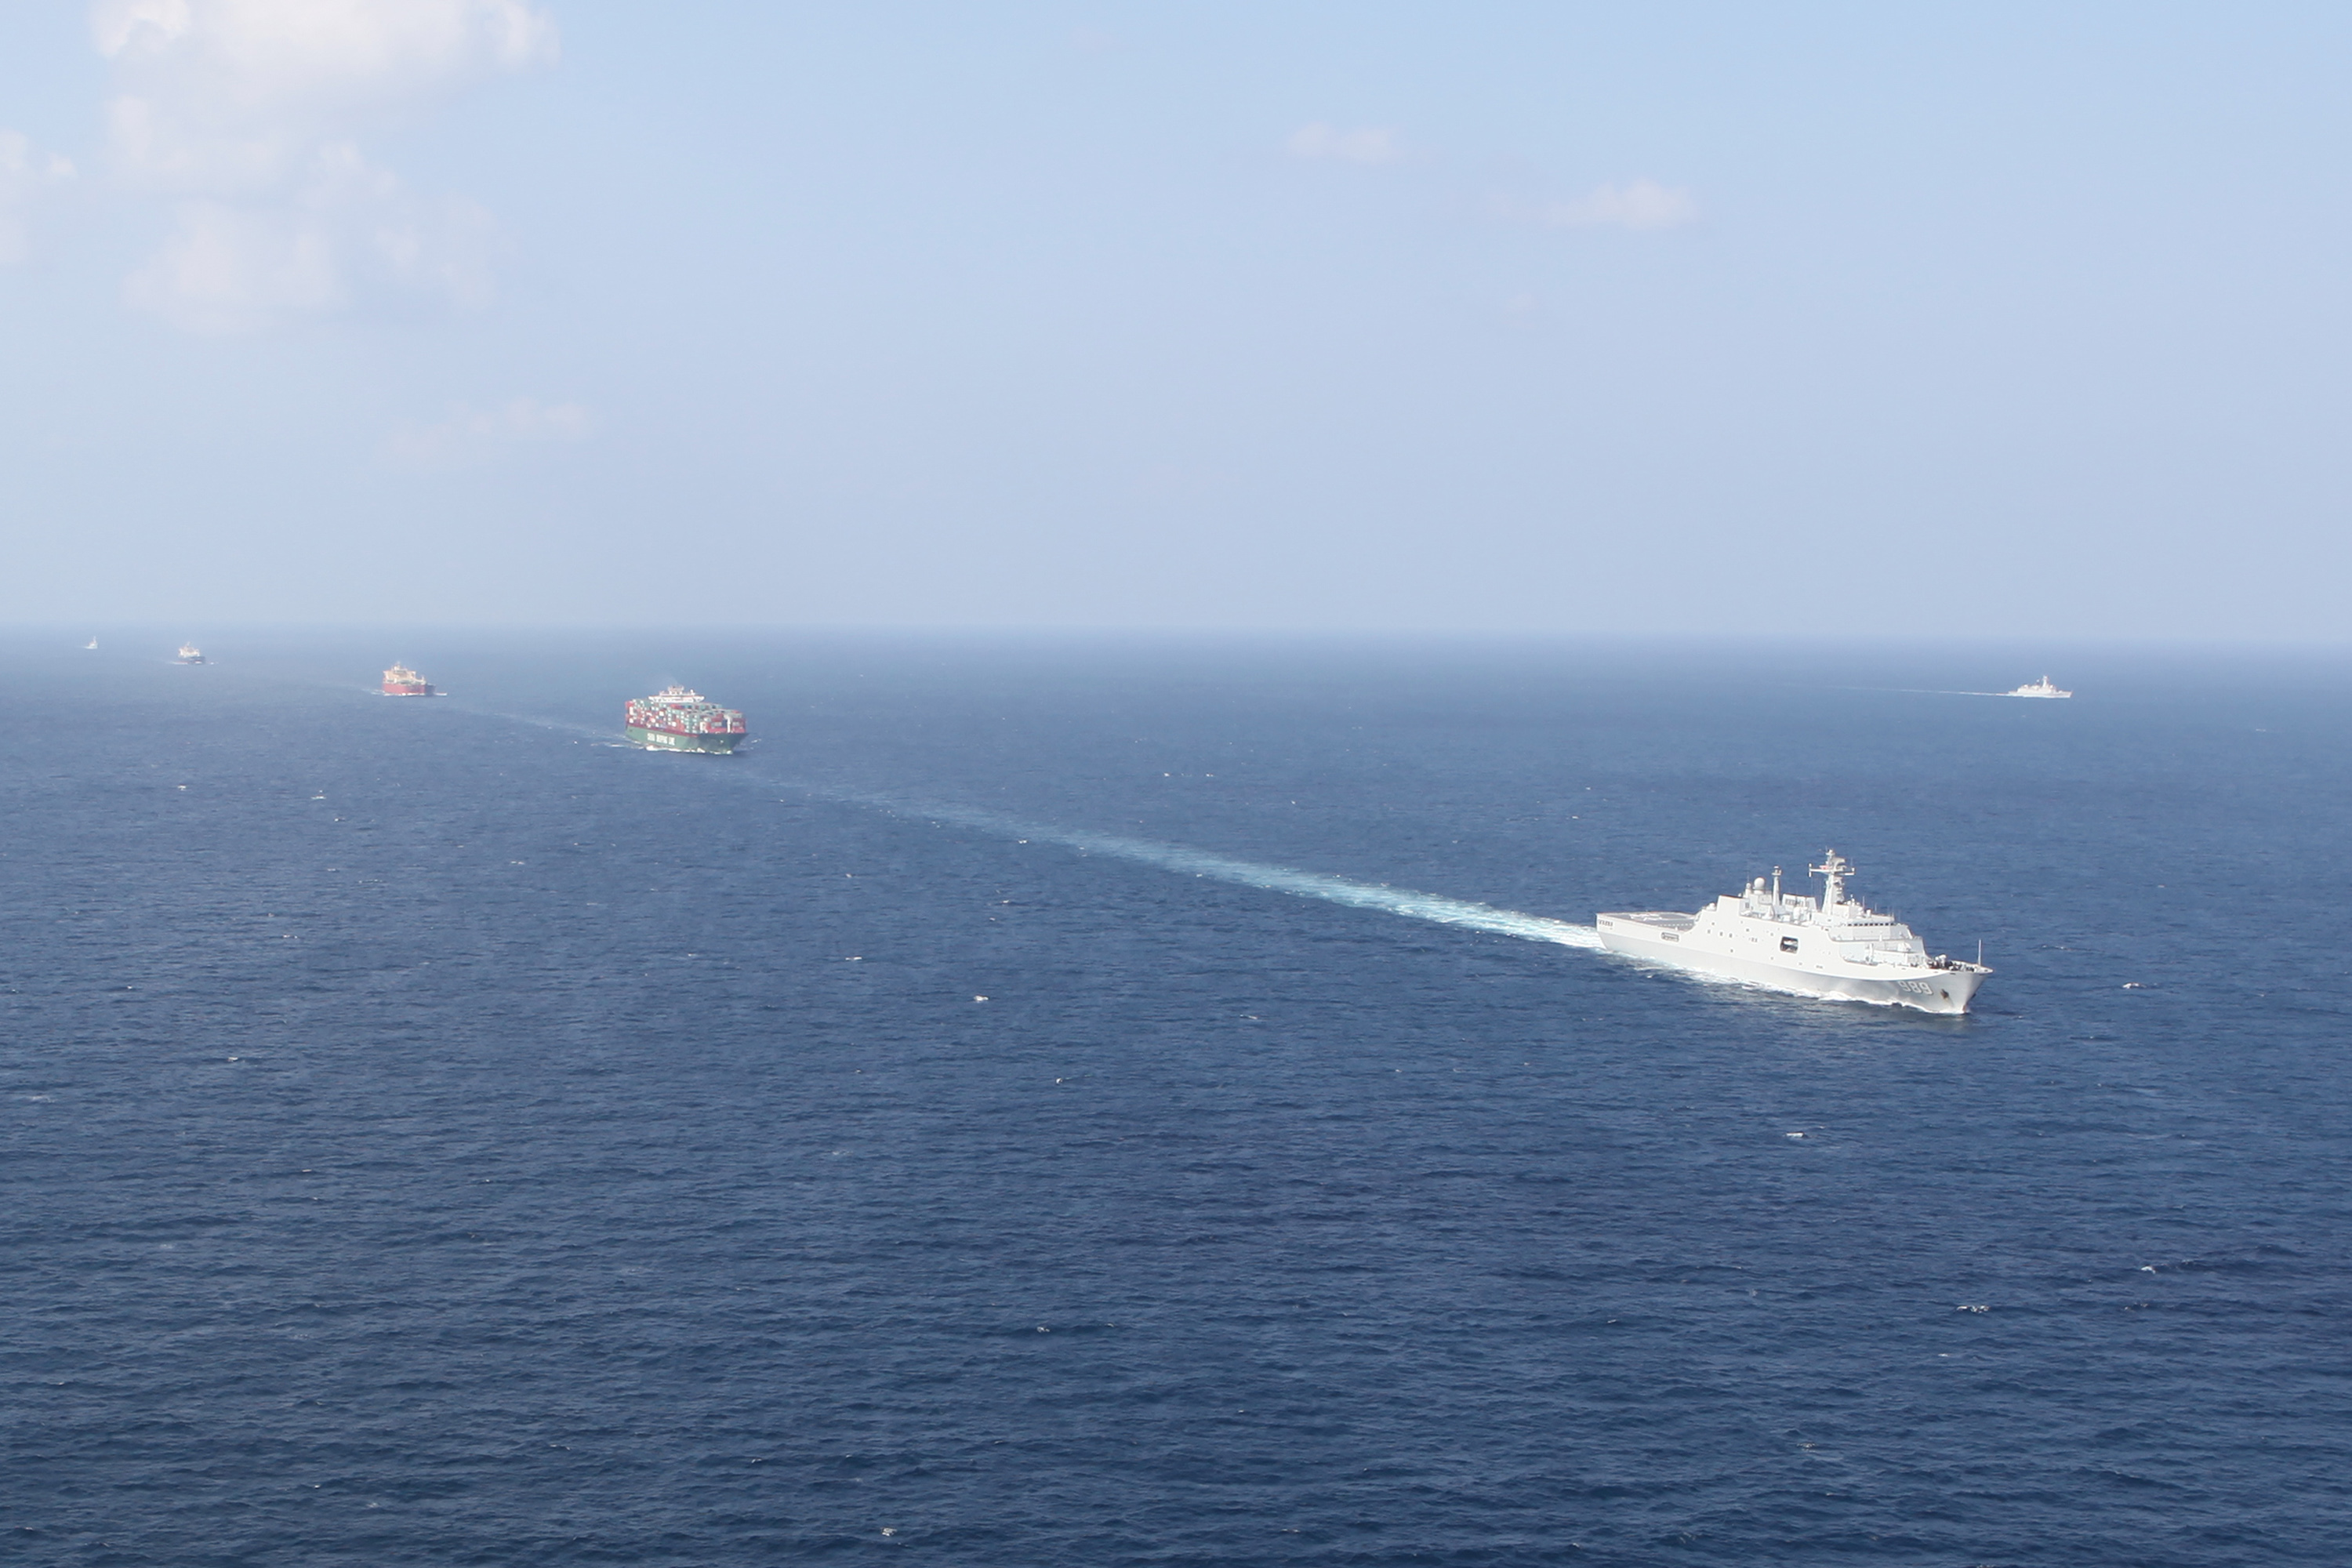 (Multimedia) Chinese naval fleets escort over 6,600 vessels in Gulf of Aden, Somalia over past 10 years - Xinhua